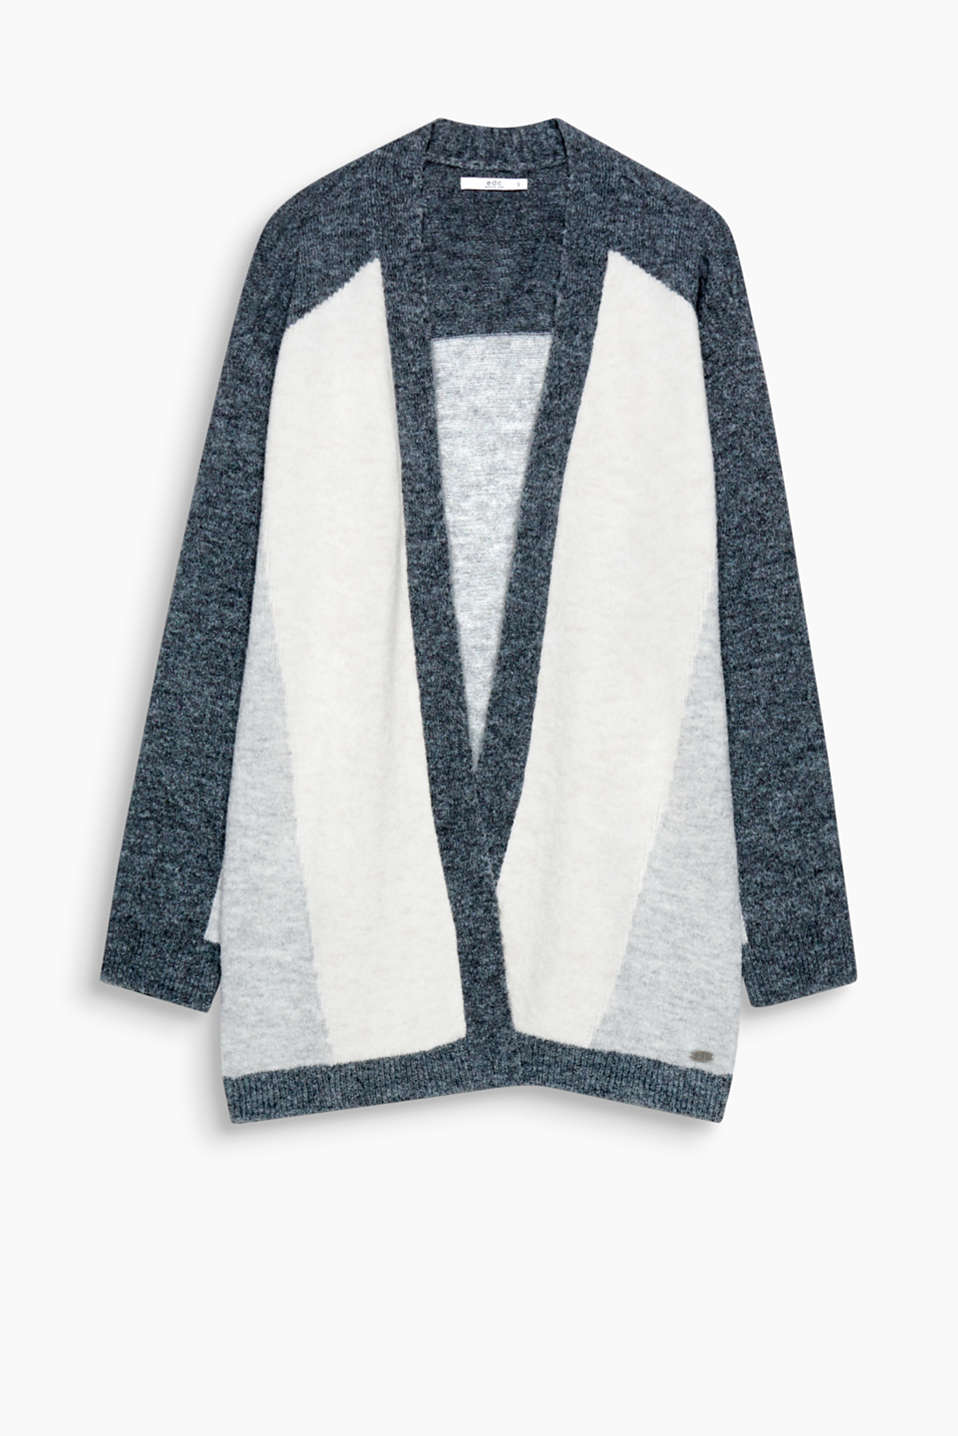 Geometric colour blocking makes this open, wool blend cardigan a real eye-catcher